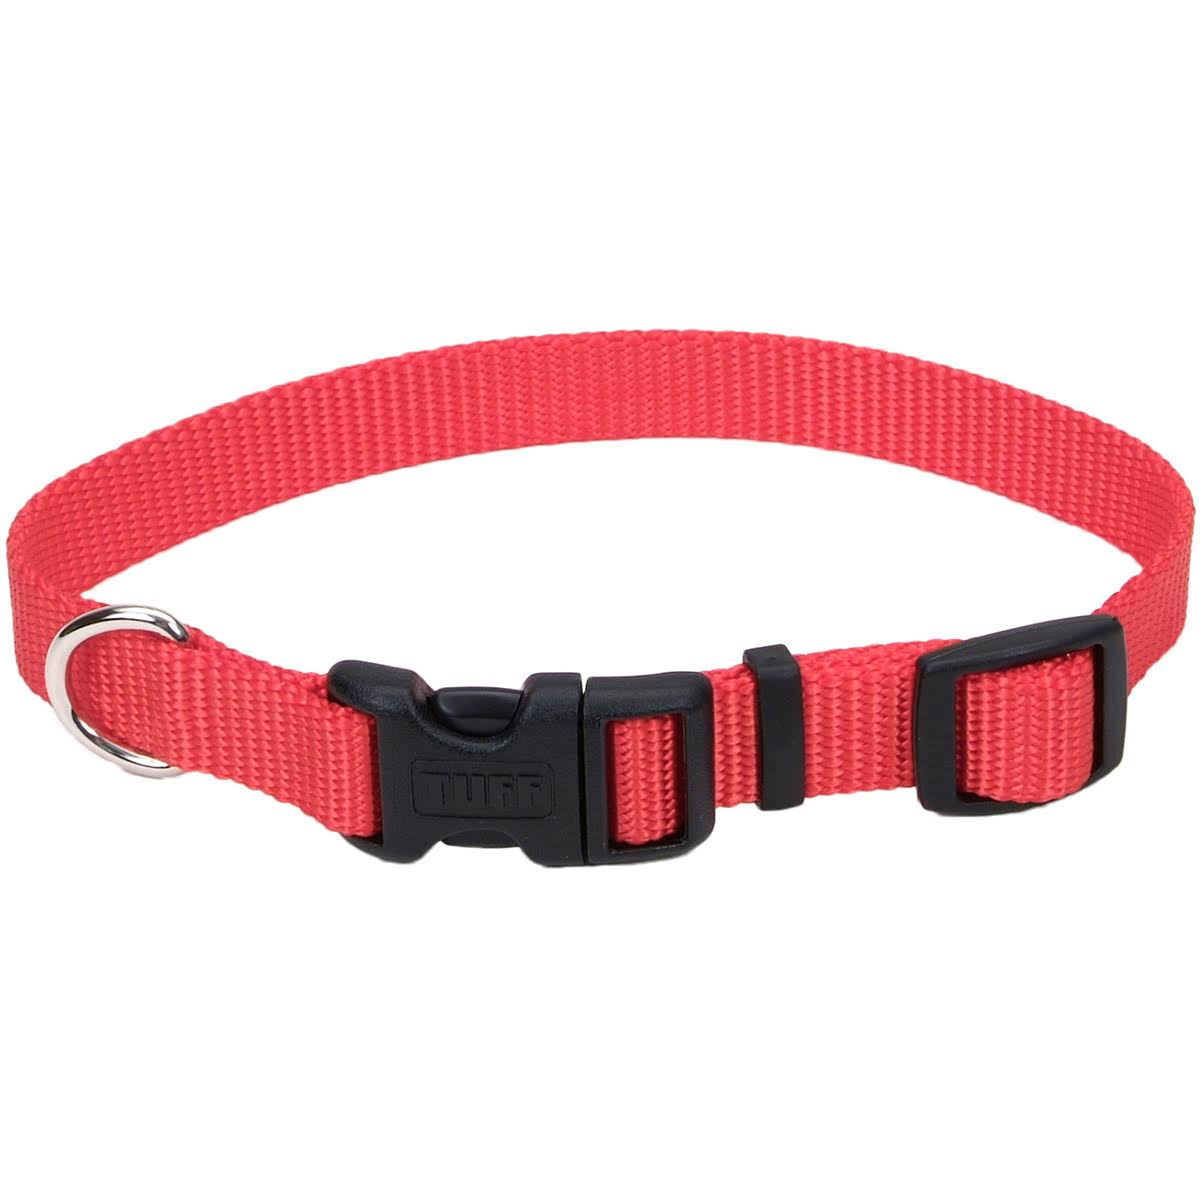 Coastal Pet Products Nylon Adjustable Collar - Red, Small